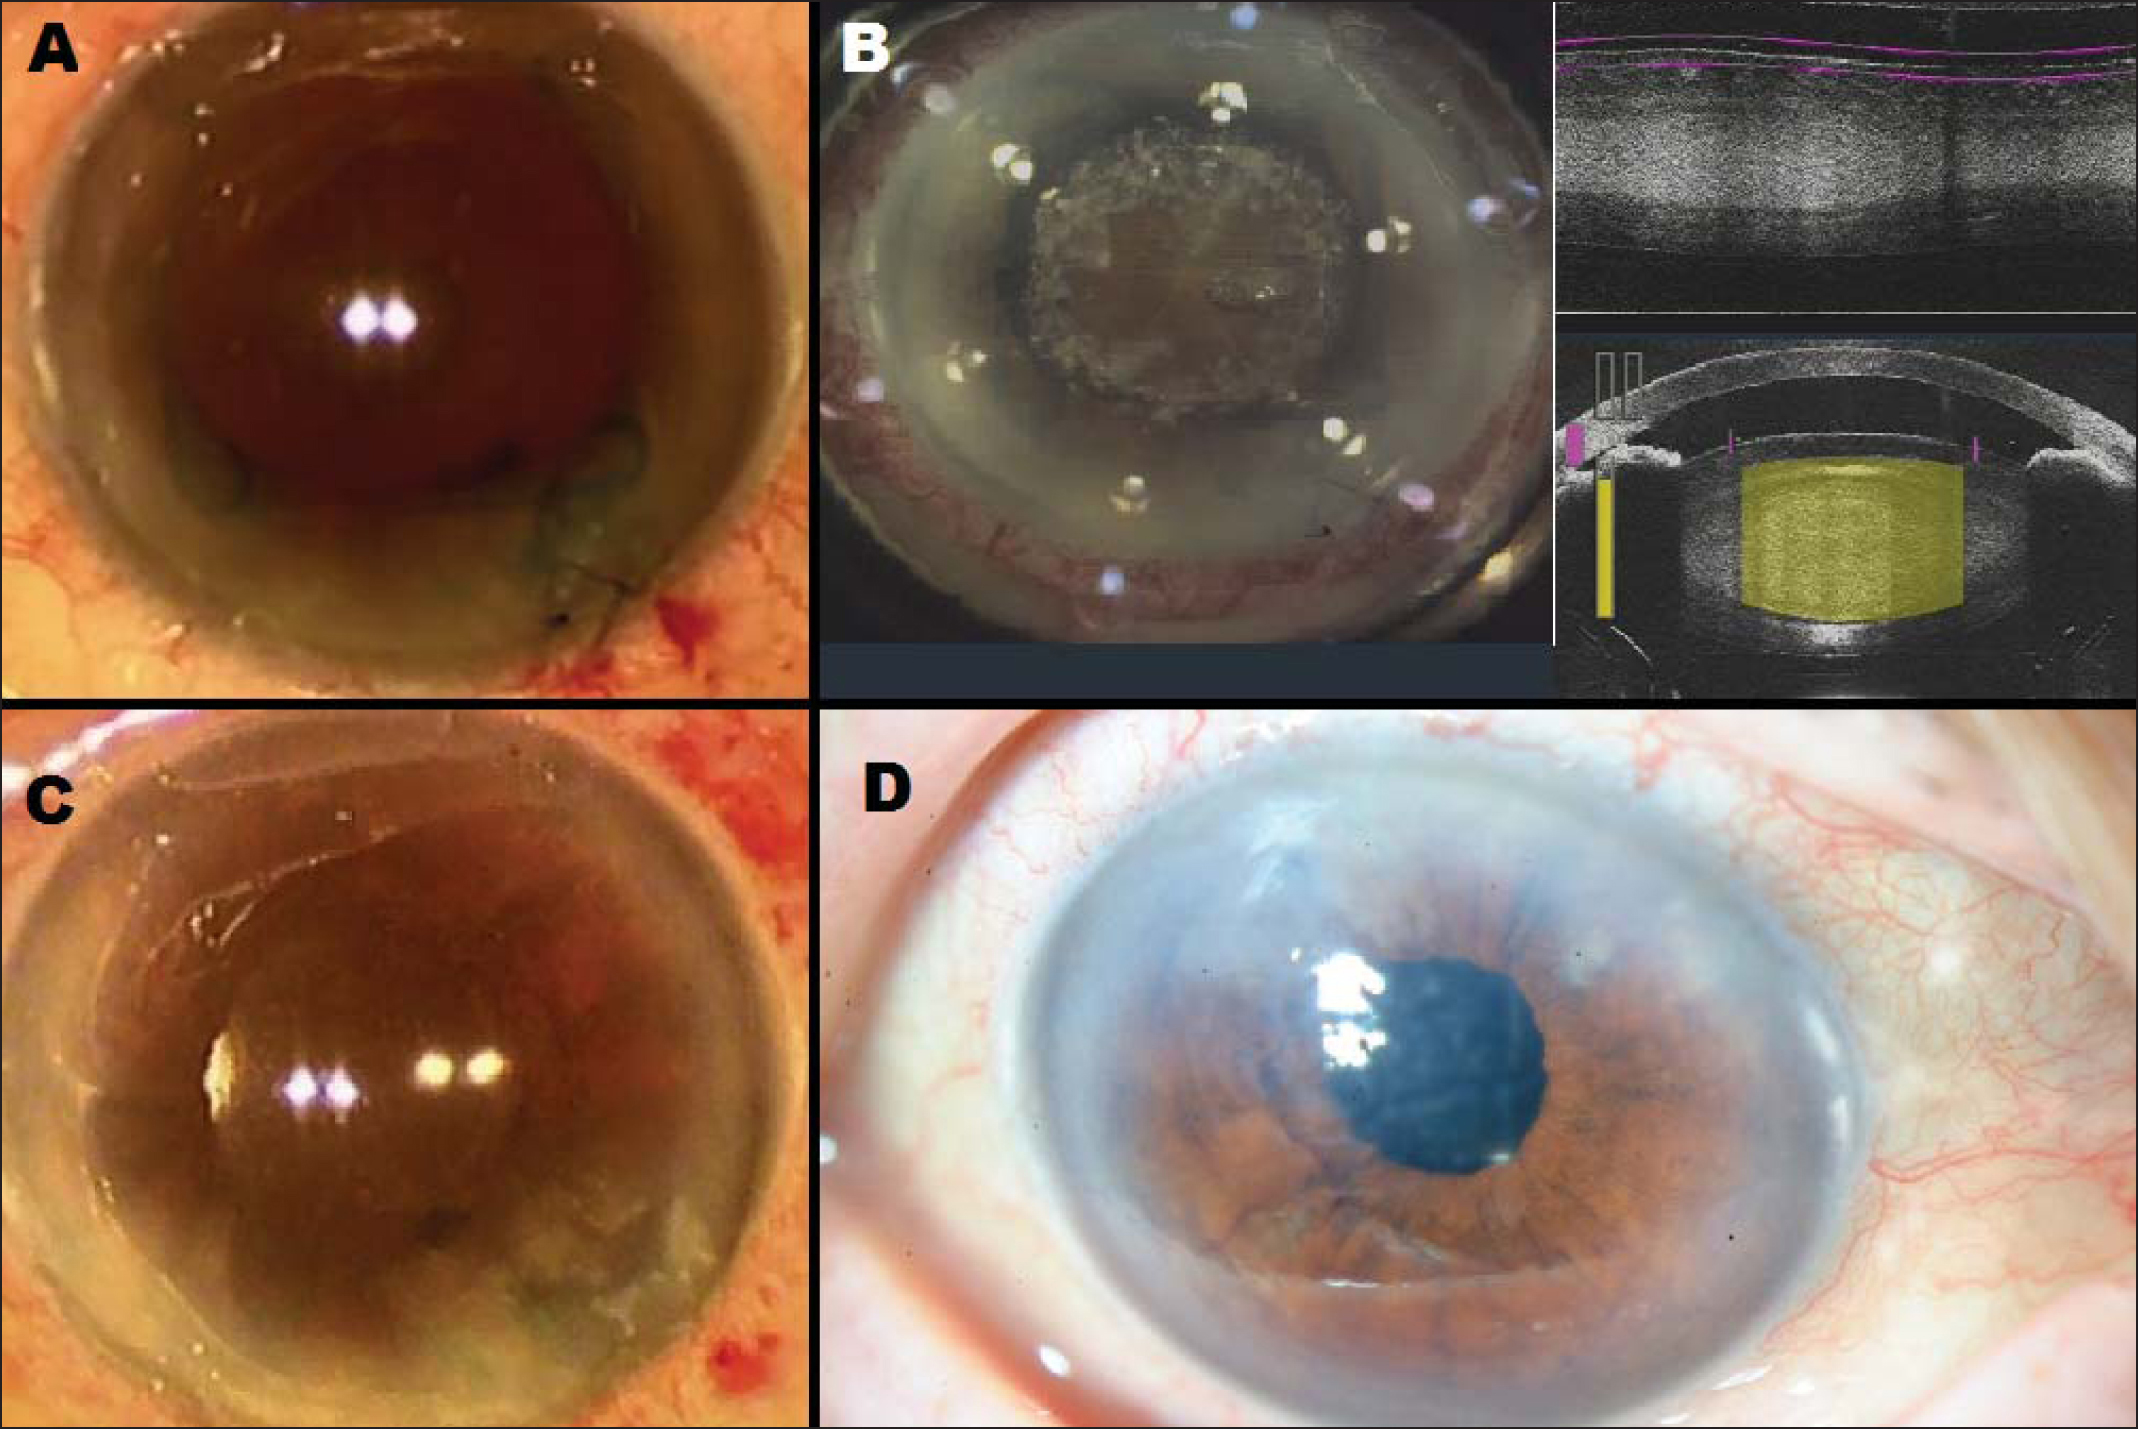 Intraoperative and postoperative state. (A) Clear corneal incisions, stained lens capsule, implanted Malyugin ring, and sutured corneal tunnel can be observed. (B) Femtosecond laser pretreatment: capsulorrhexis and lens fragmentation. (C) At the end of the surgery. (D) Digital photography of the anterior segment 1 week after cataract surgery.